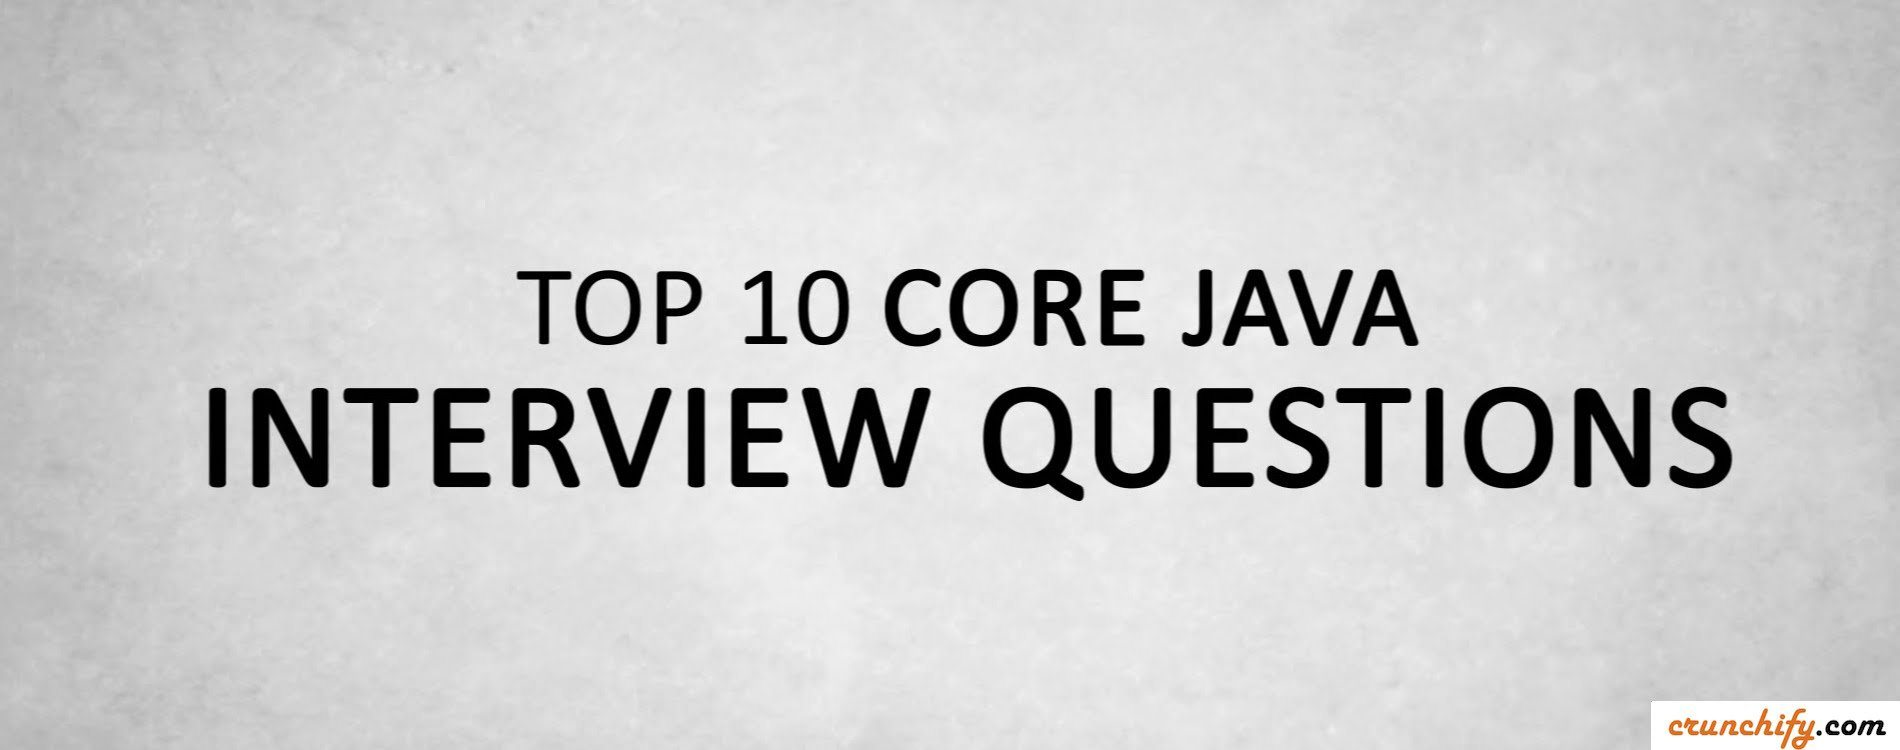 Top 10 Java Interview Questions by Crunchify